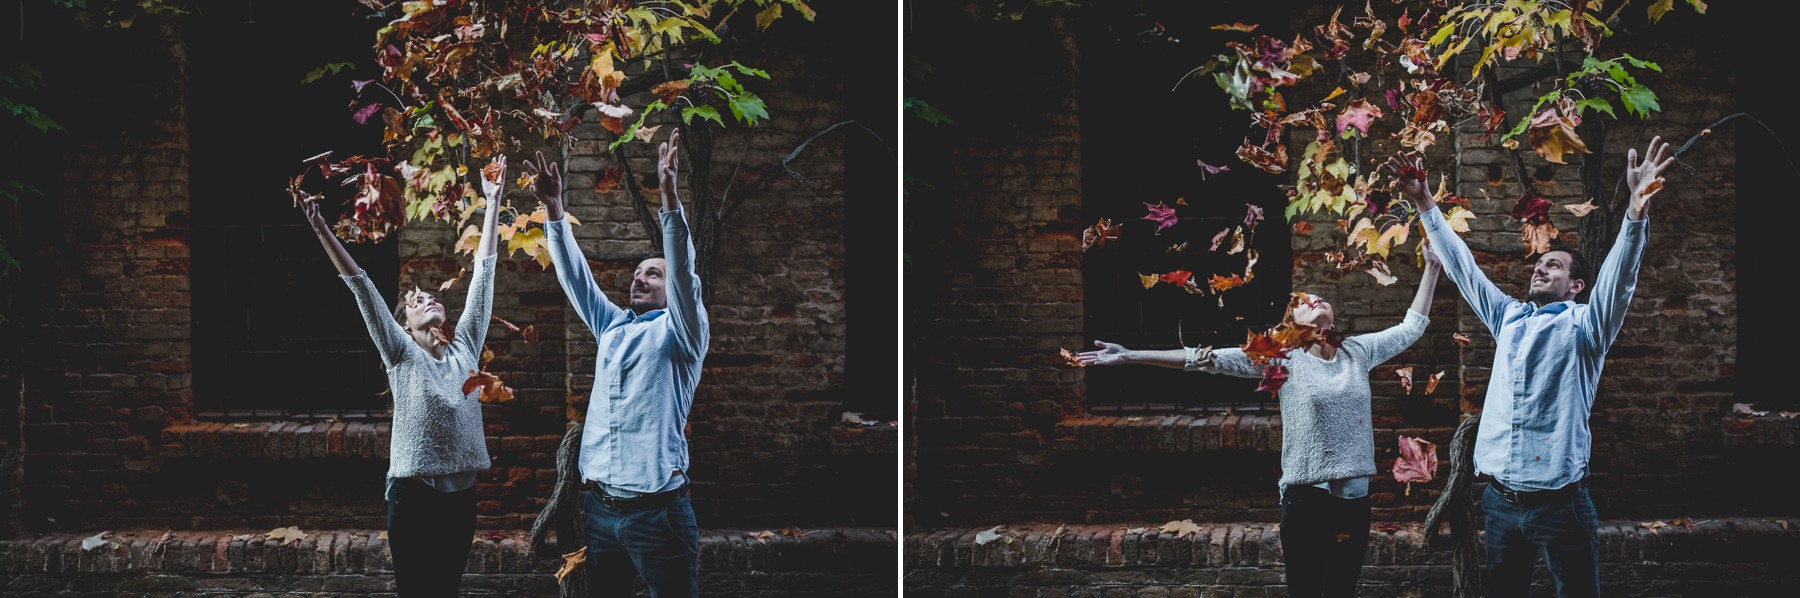 people throw leaves into the air